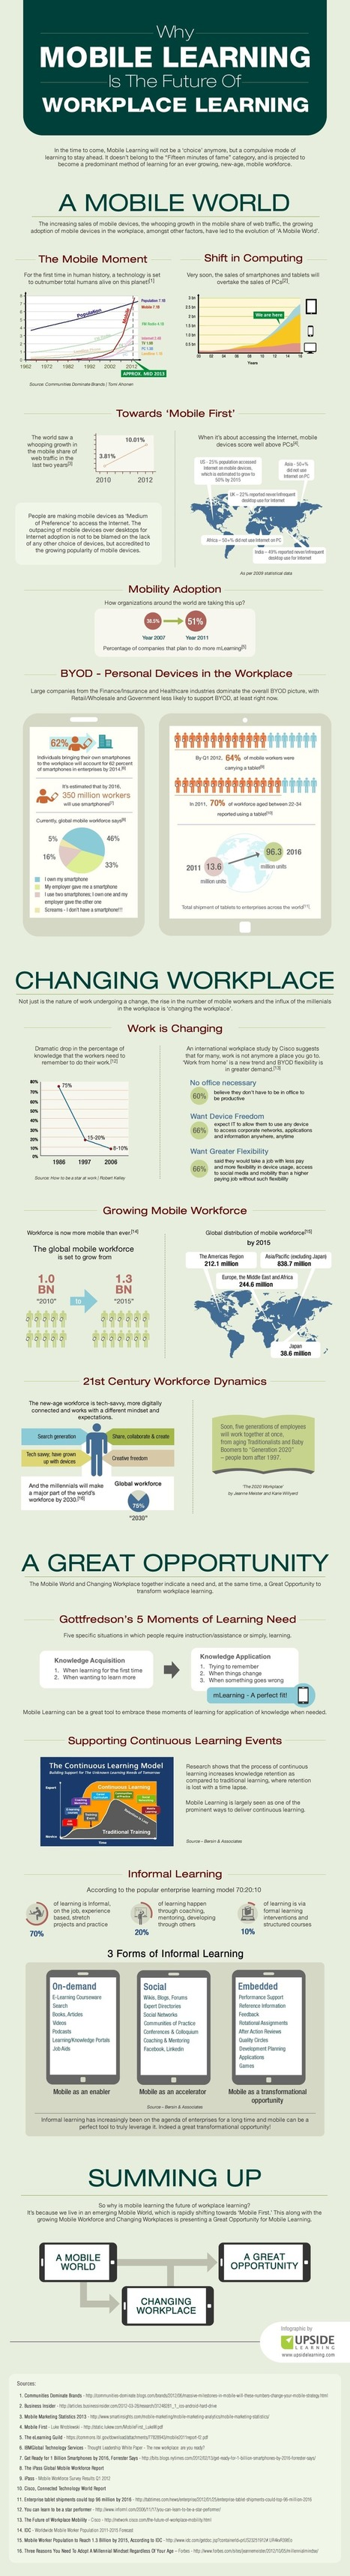 [Infografía] Why mobile learning is the future ... | Pedalogica: educación y TIC | Scoop.it